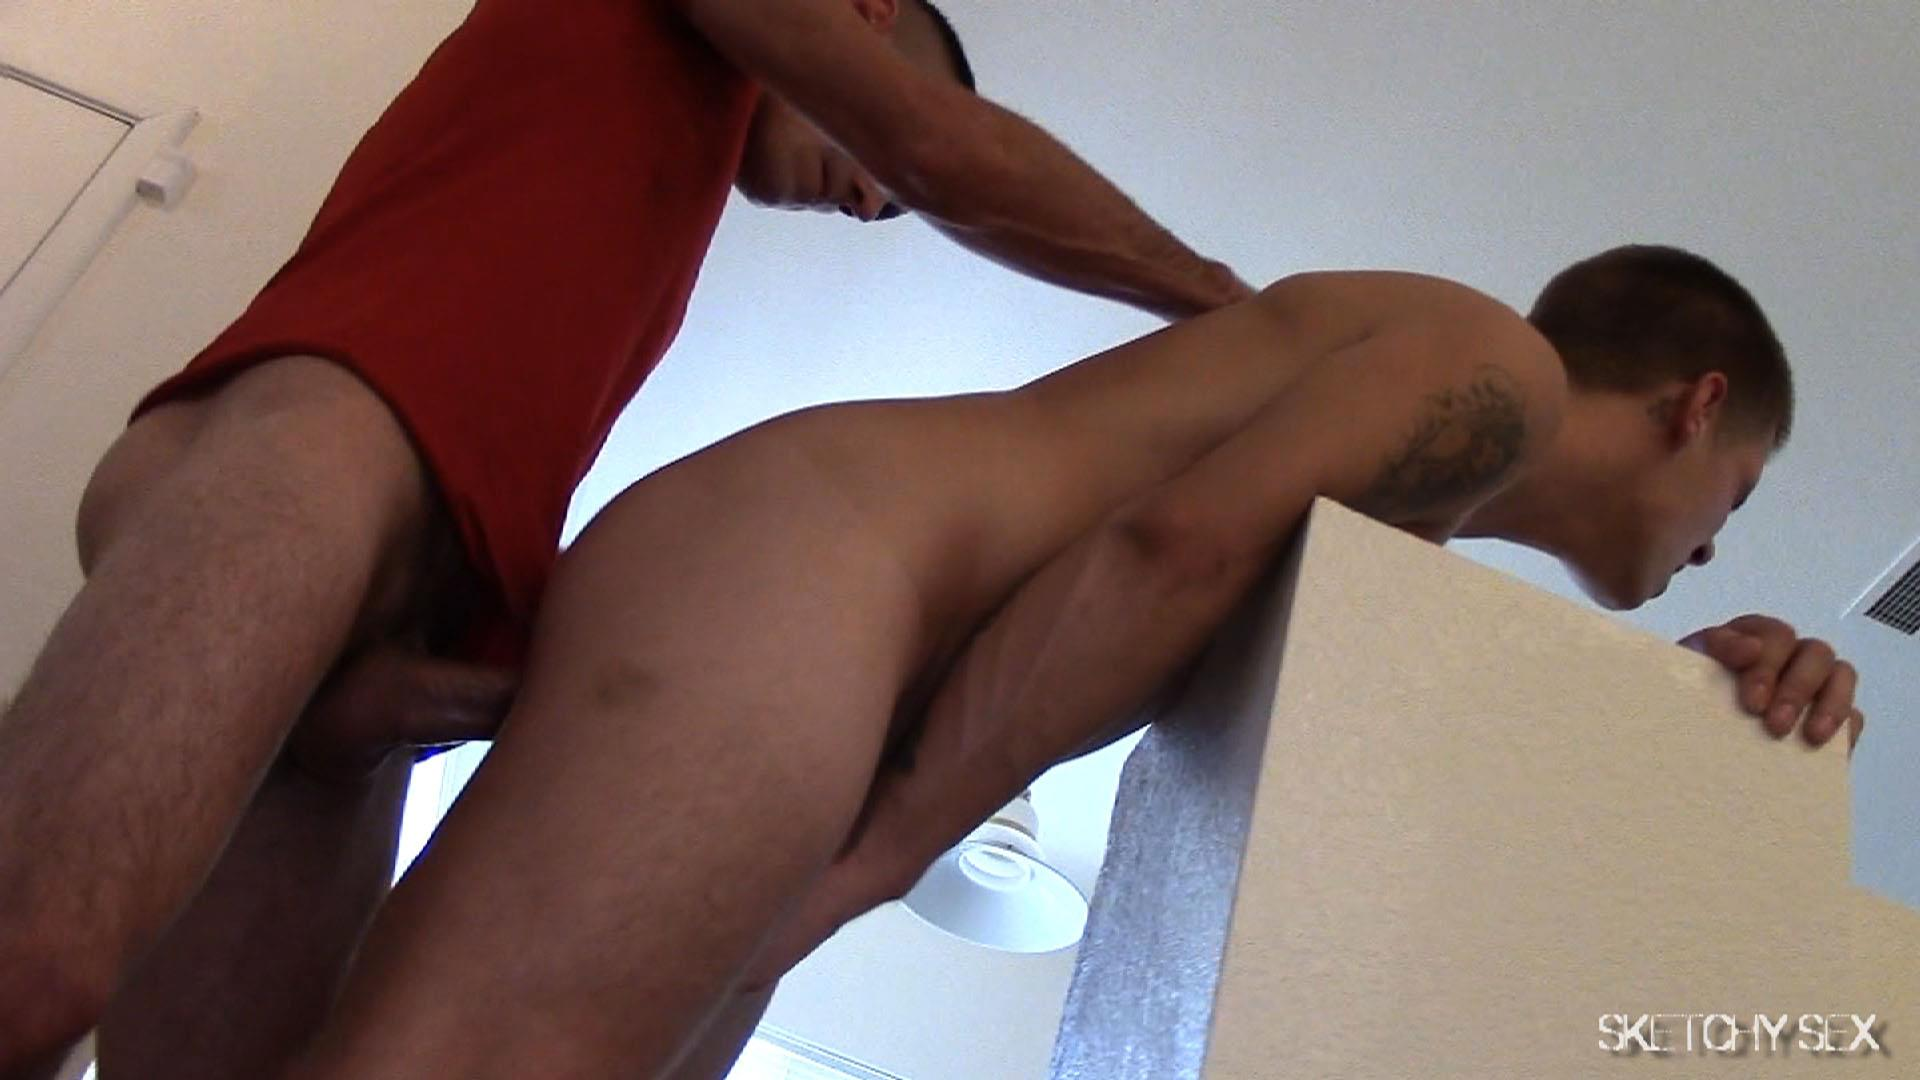 Sketchy Sex Nate Getting Fucked Bareback By A 10 Inch Craigslist Cock Amateur Gay Porn 06 Taking A 10